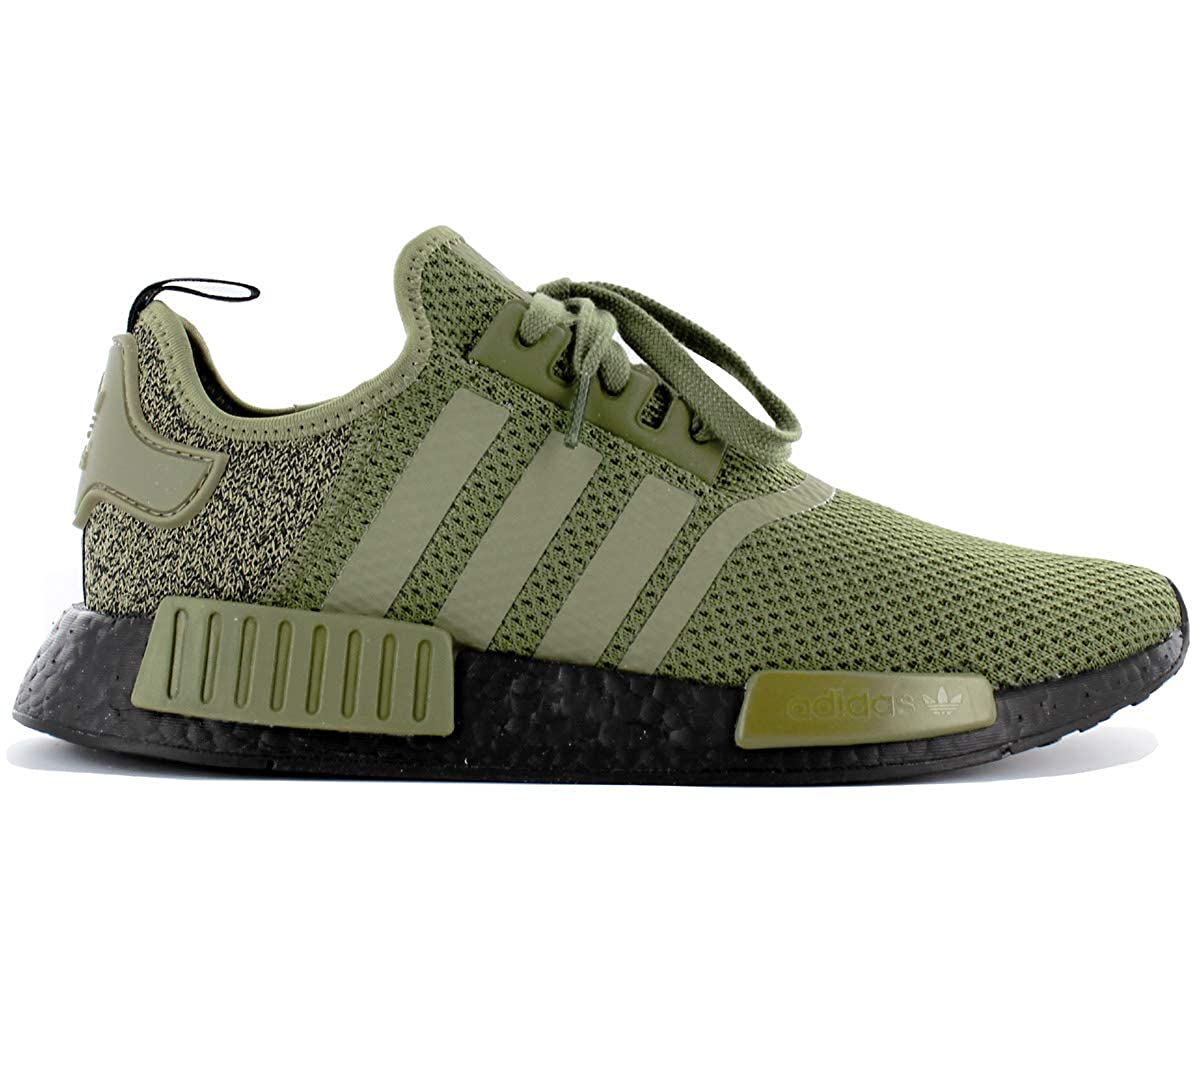 714ce49d2640a adidas - NMD R1 - AQ1246 - Color: Green-Olive - Size: 8.0: Amazon.co ...